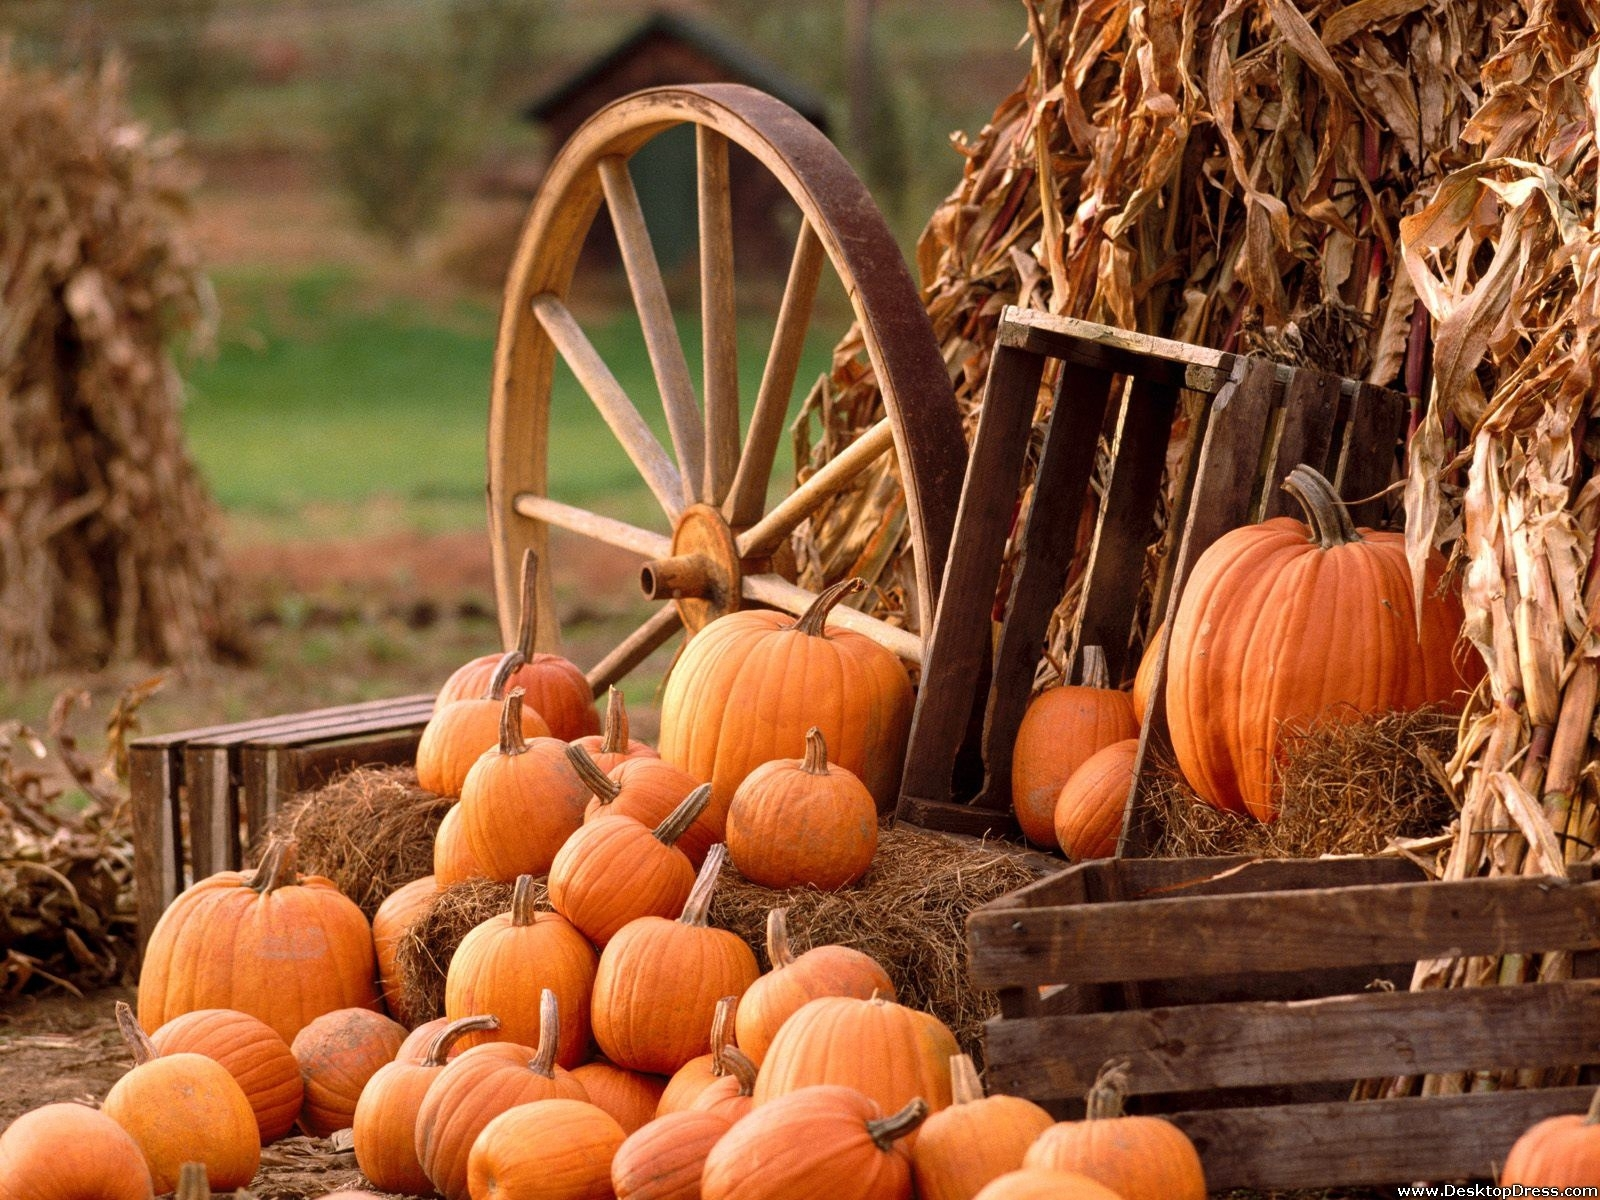 desktop wallpapers » other backgrounds » autumn harvest » www